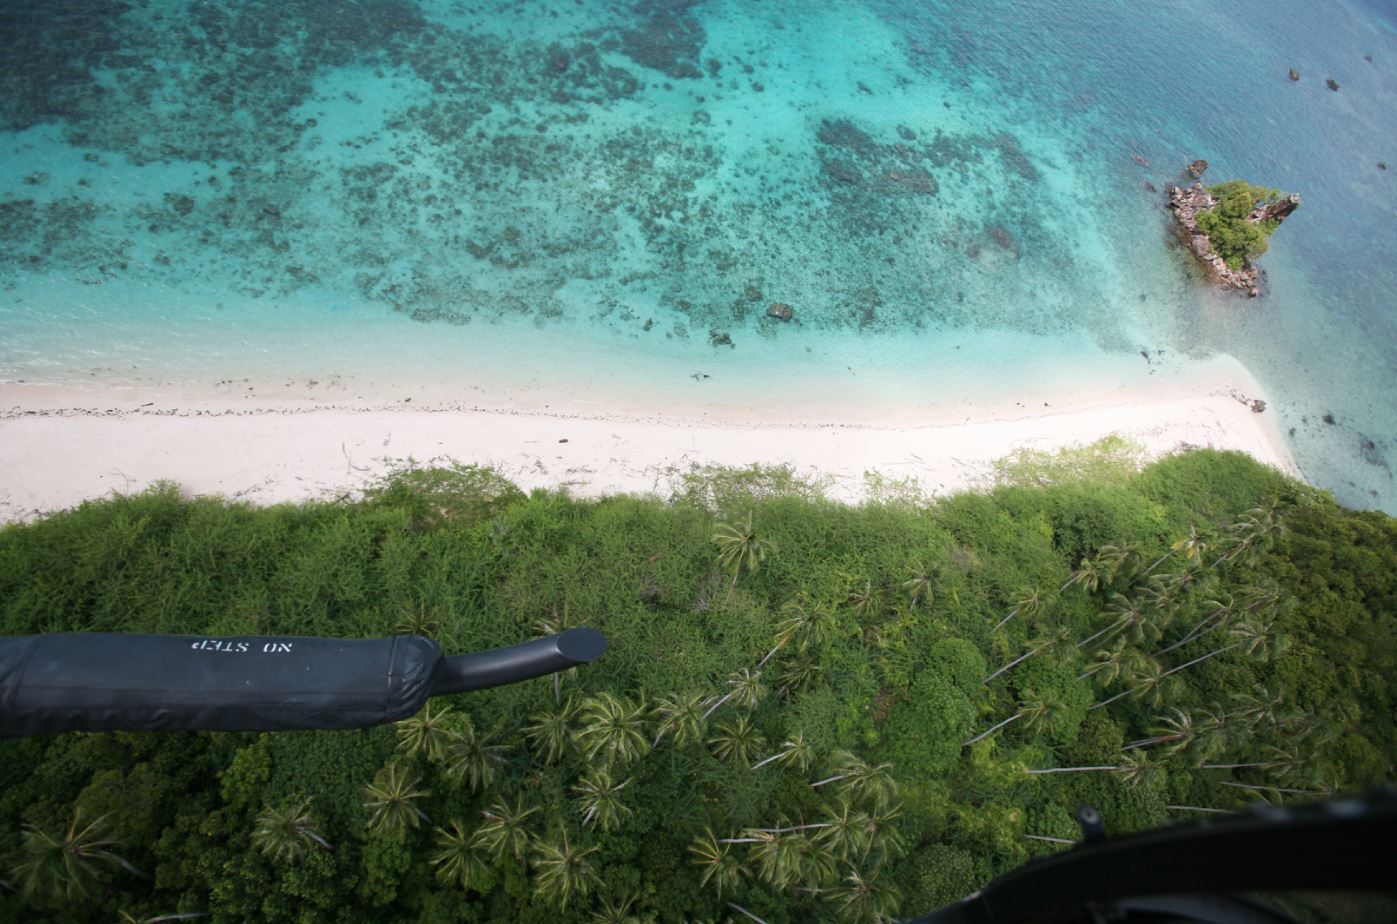 An aerial view of the island from a helicopter.